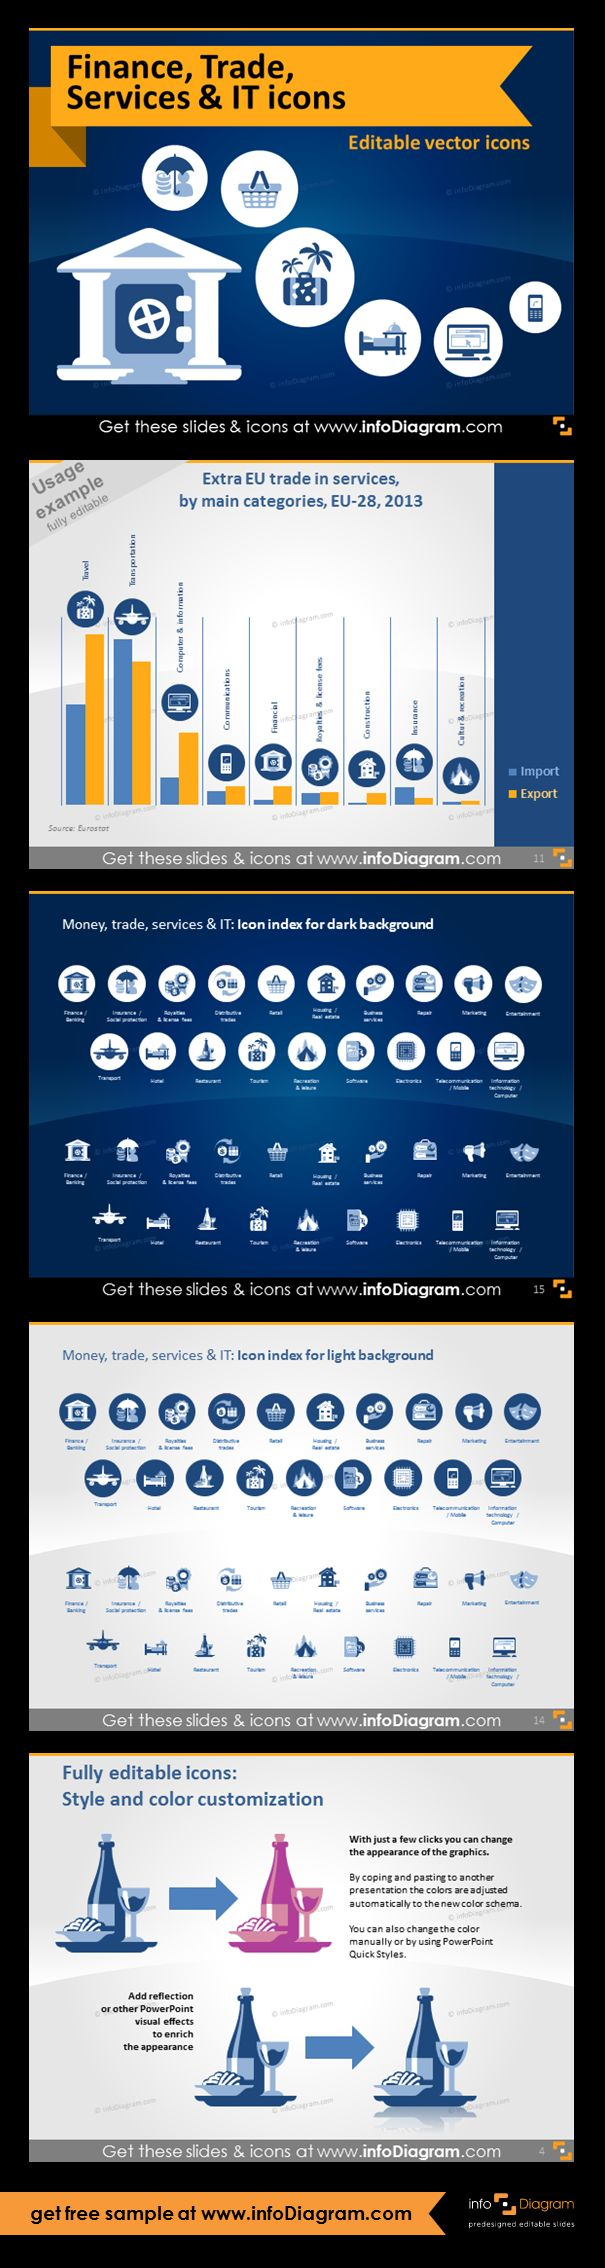 Icons for visualizing Finance, Money, Trade, Services, IT sectors. All symbols are as clipart pictures - fully editable in PowerPoint. Extra EU trade in services by industry categories (bar chart with icons illustration).Finance, trade, service, transport and travel, leisure and IT and electronics symbols. Icons provided in 4 versions. Example of style and color customization.